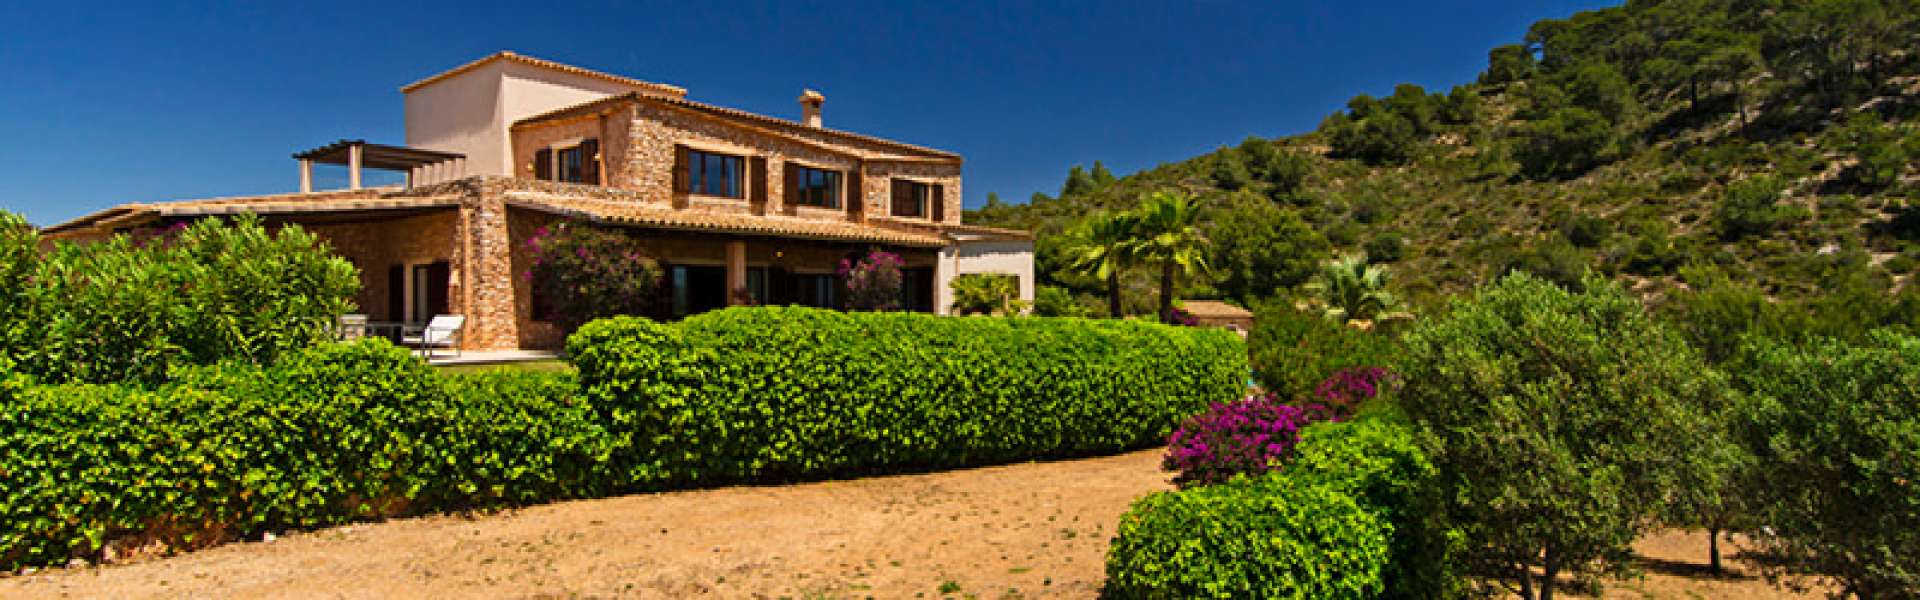 Porto Colom - Country Estate at the Golf Course Vall d'Or with spectacular seaviews